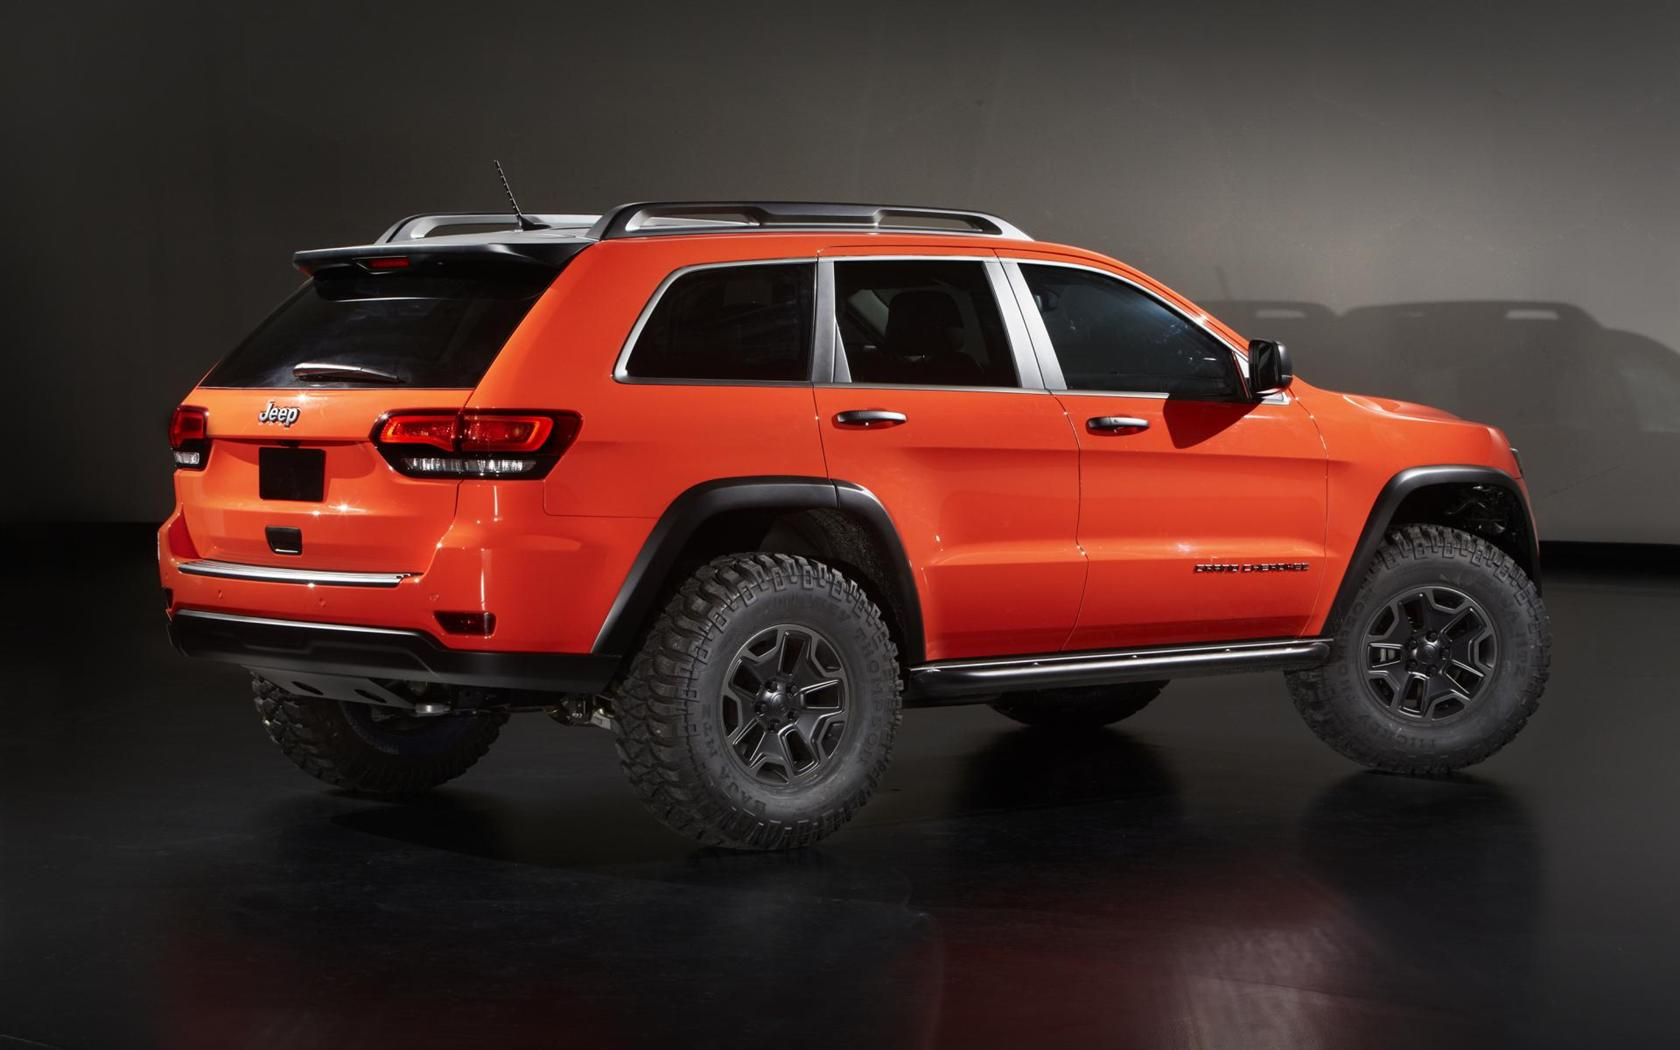 2013 jeep grand cherokee trailhawk ii concept image photo 5 of 6. Black Bedroom Furniture Sets. Home Design Ideas